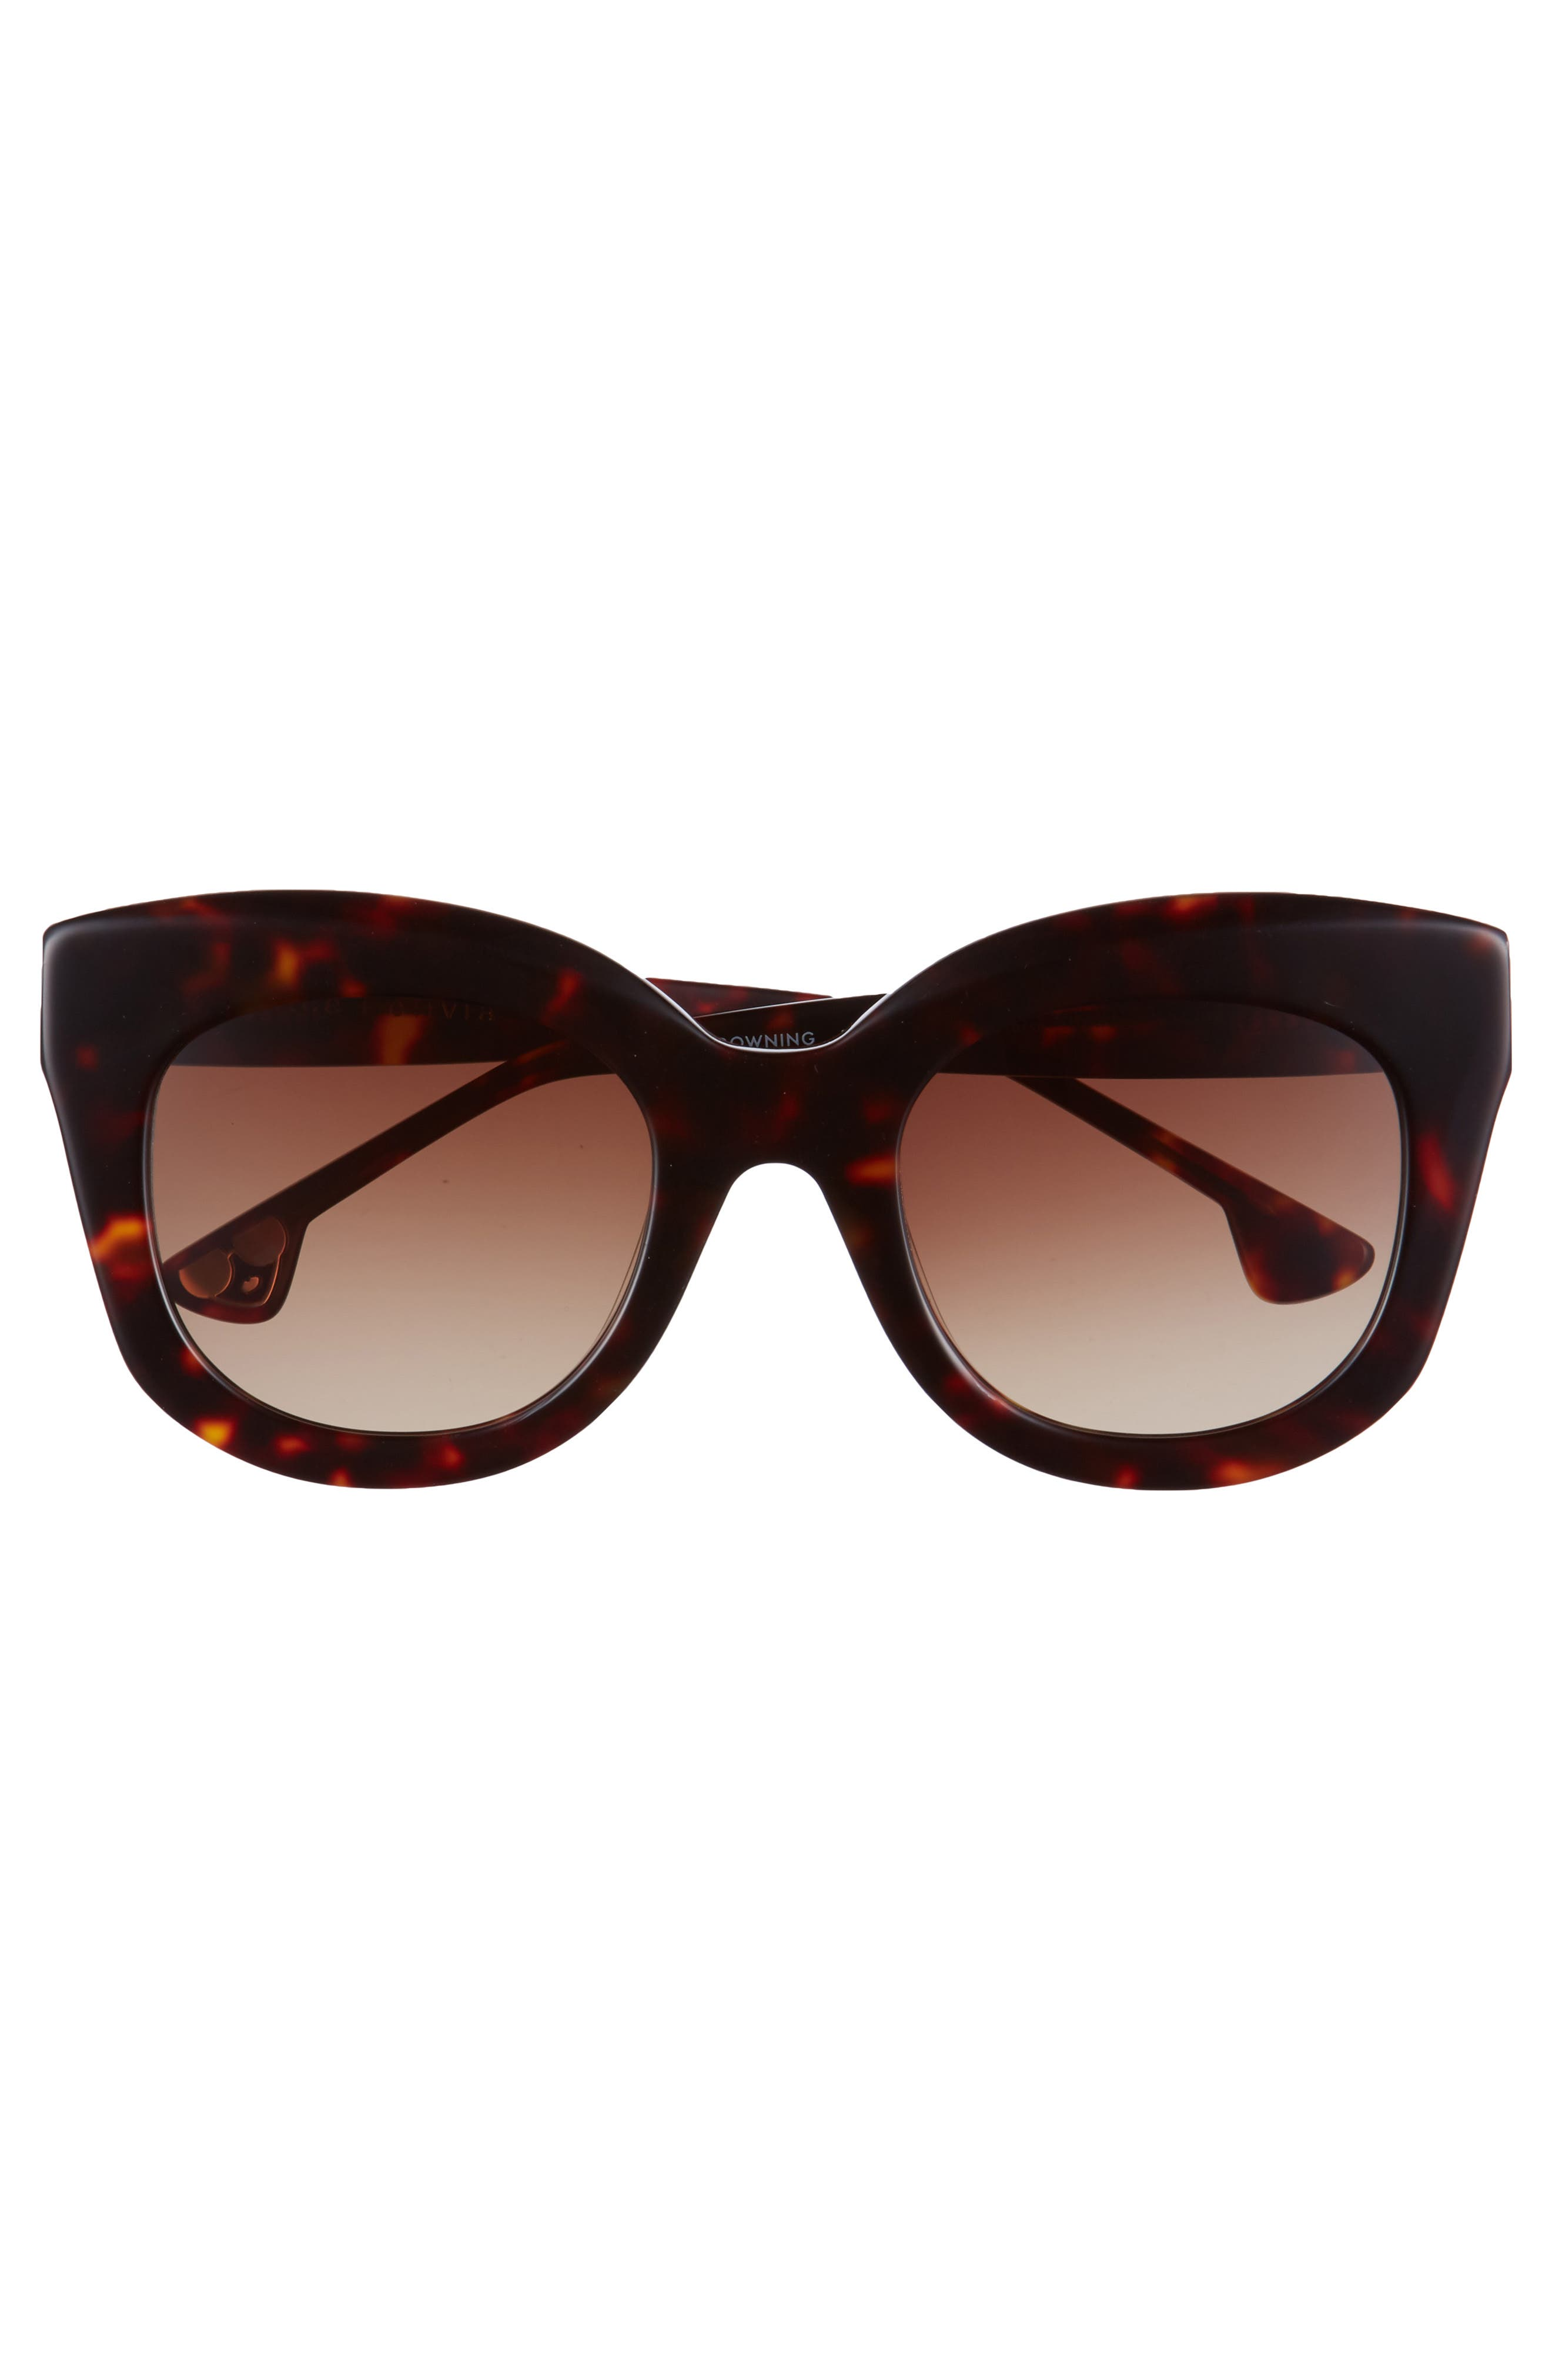 Downing 51mm Cat Eye Sunglasses,                             Alternate thumbnail 8, color,